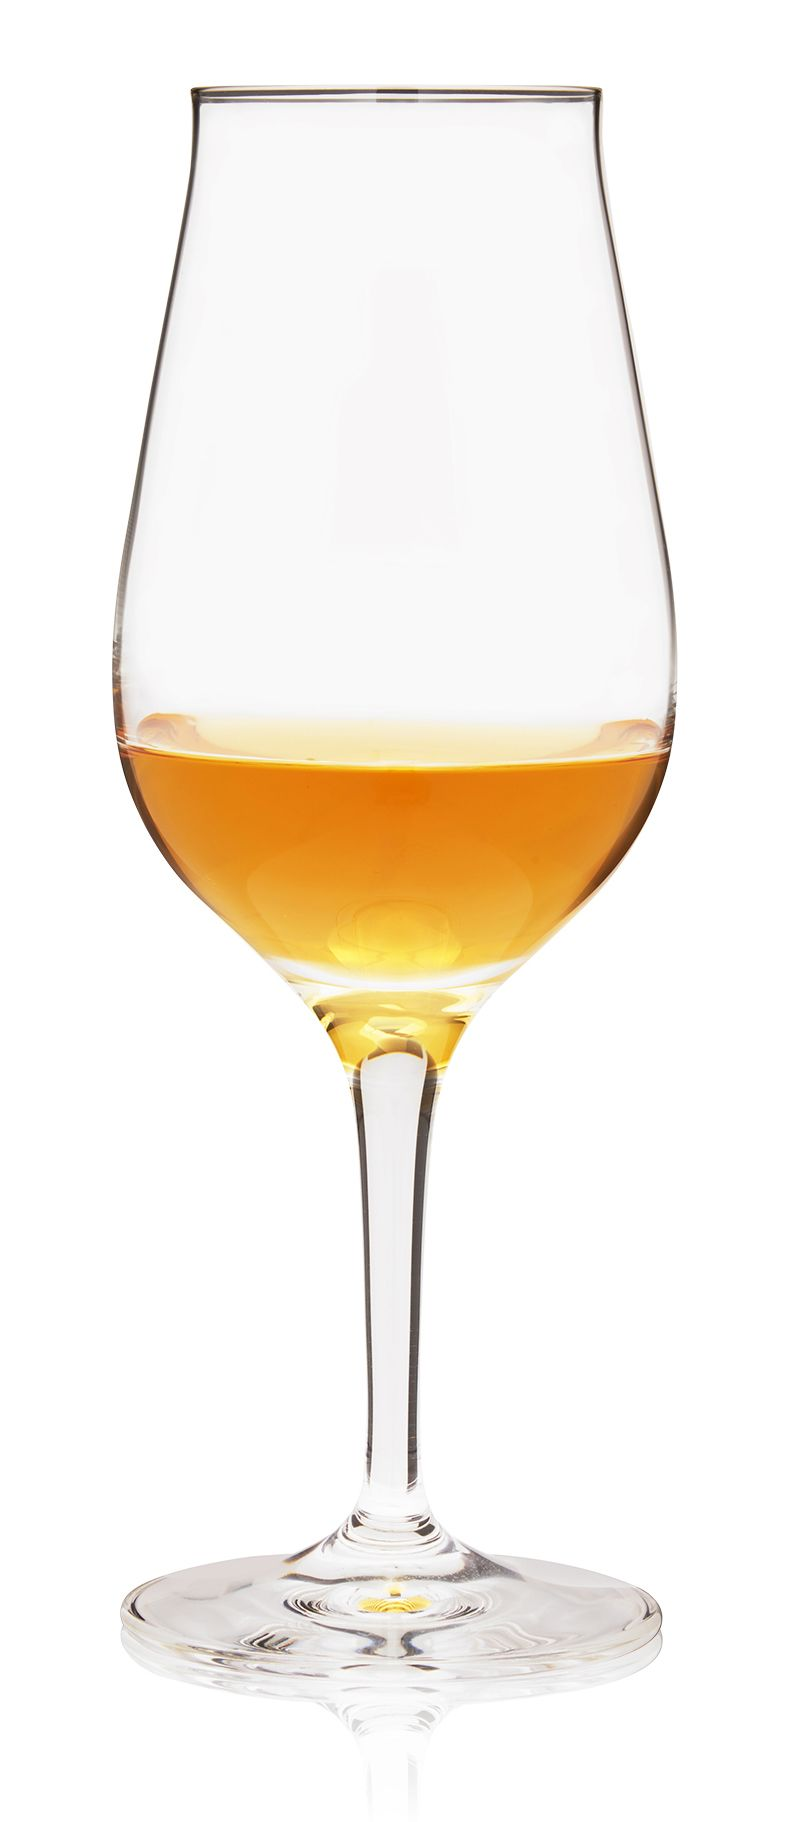 Spiegelau Whiskey Snifter Premium (Set of 4)  Gift Product Image